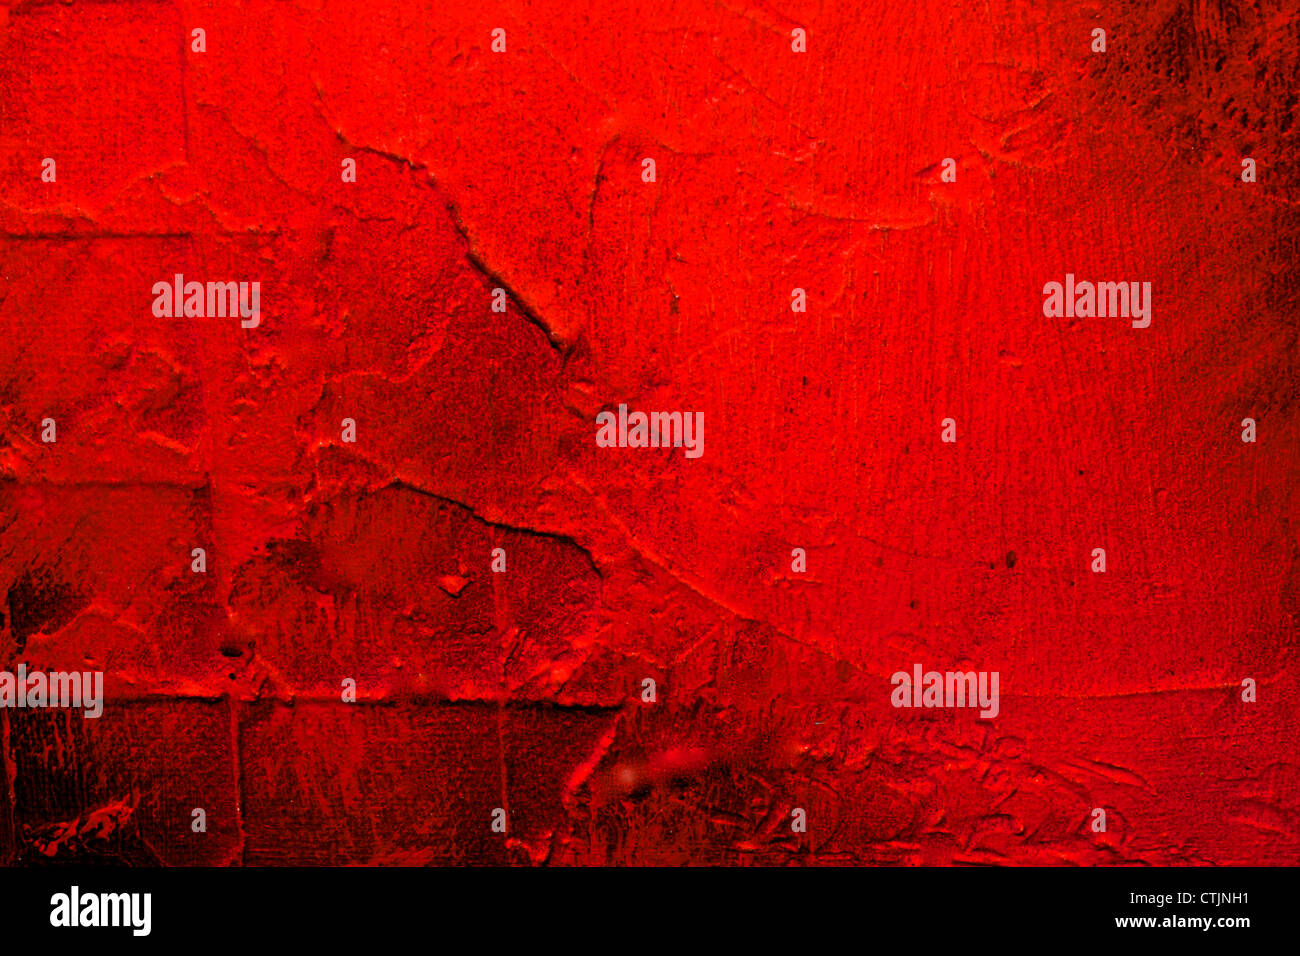 Red background or frame with lots of texture and detail stock red background or frame with lots of texture and detail jeuxipadfo Choice Image